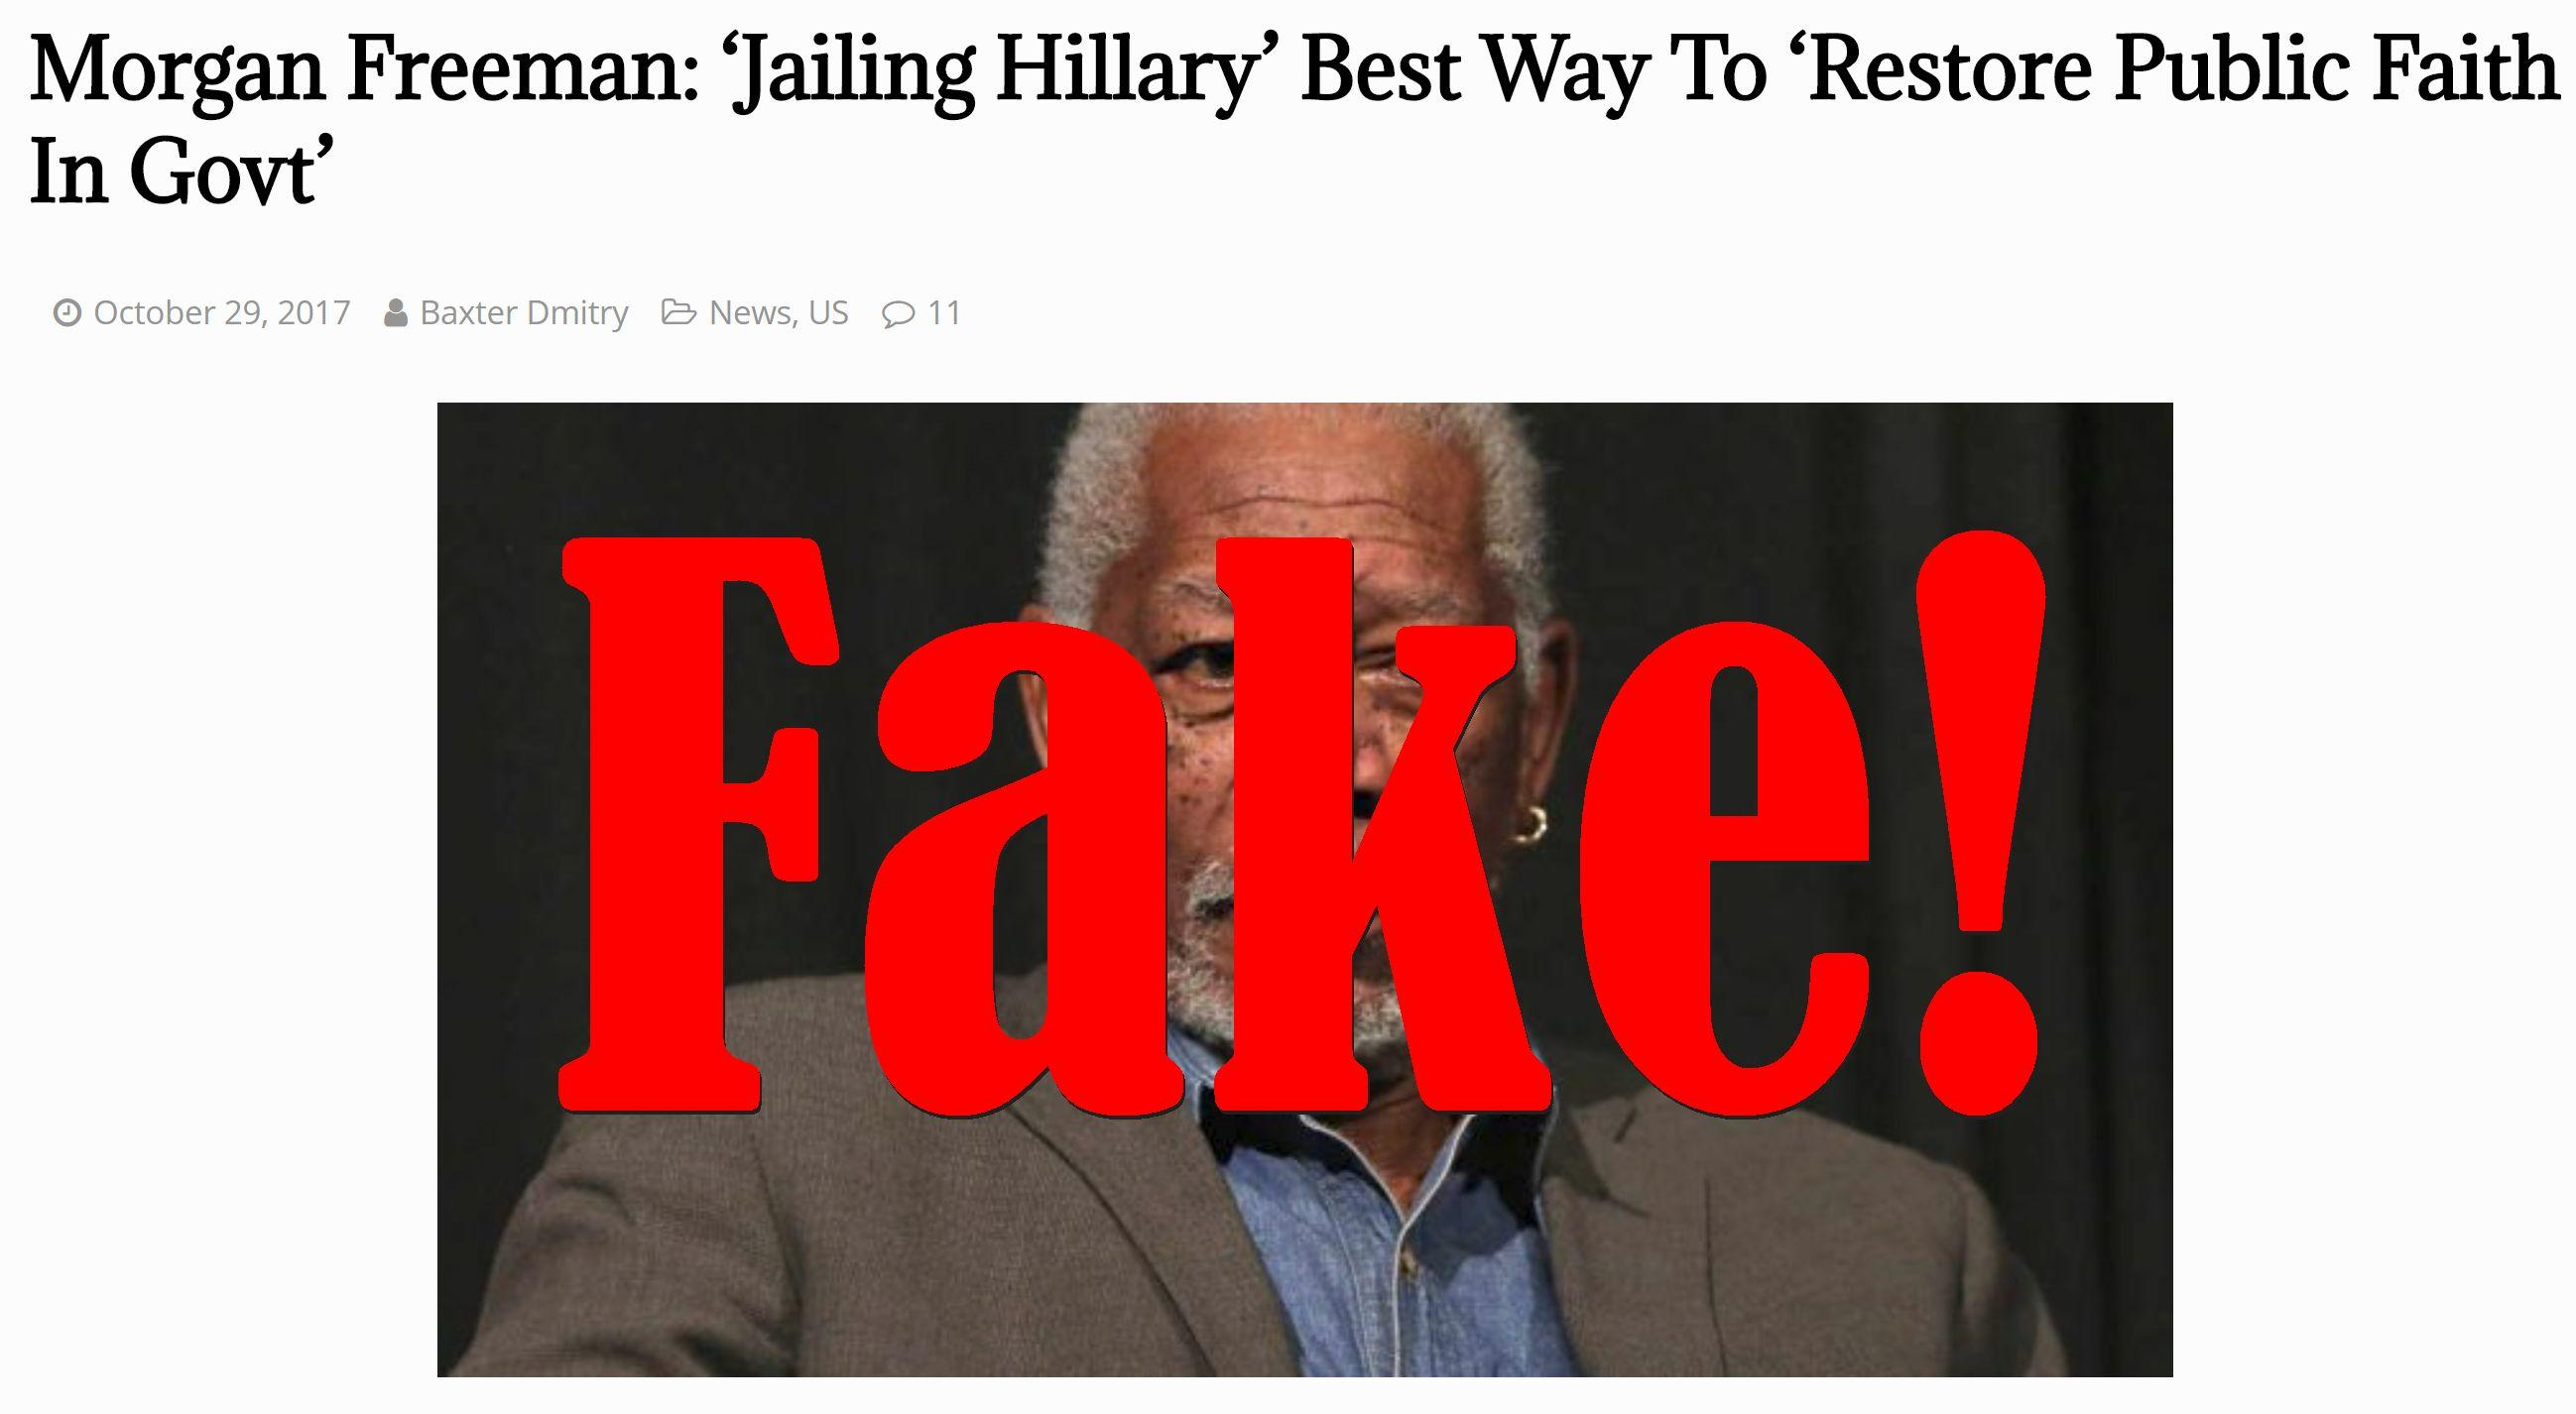 Fake News: Morgan Freeman Did NOT Say 'Jailing Hillary' Best Way To 'Restore Public Faith In Govt'